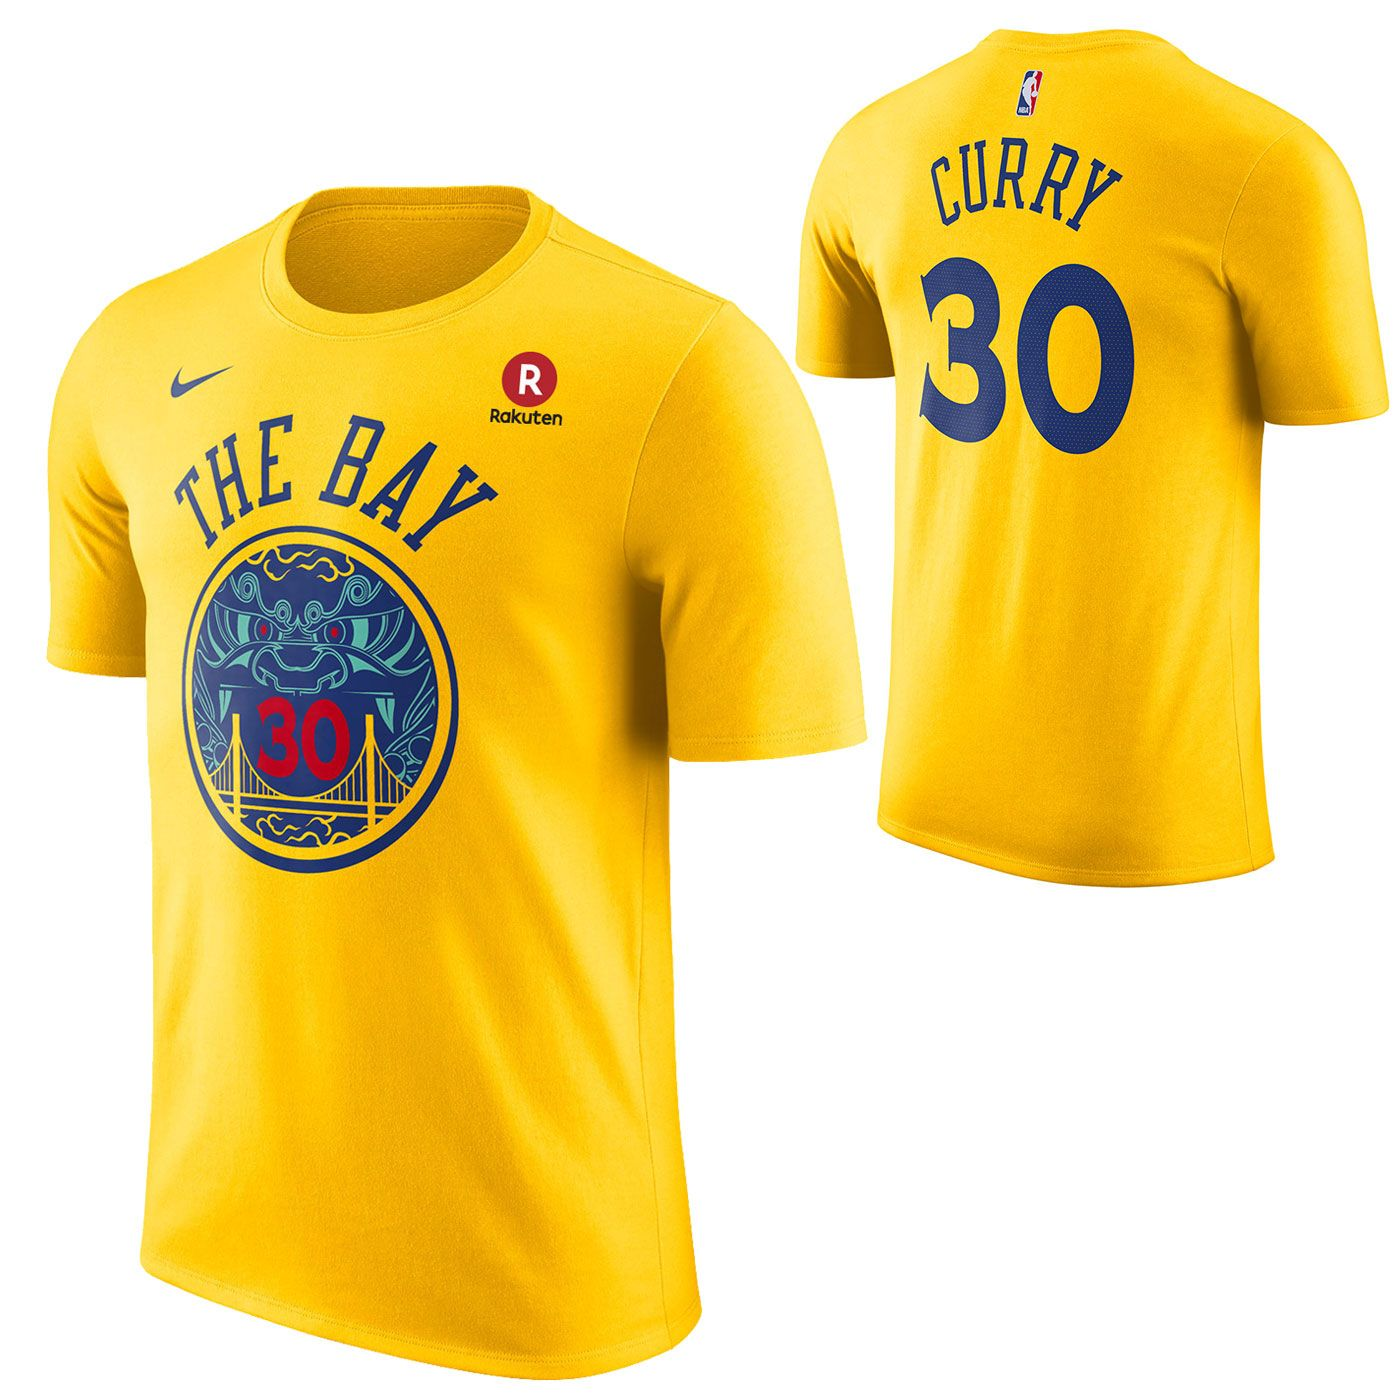 616e3da3a Golden State Warriors Nike Dri-FIT Men s City Edition Stephen Curry  30 Chinese  Heritage Game Time Name   Number Tee - Gold